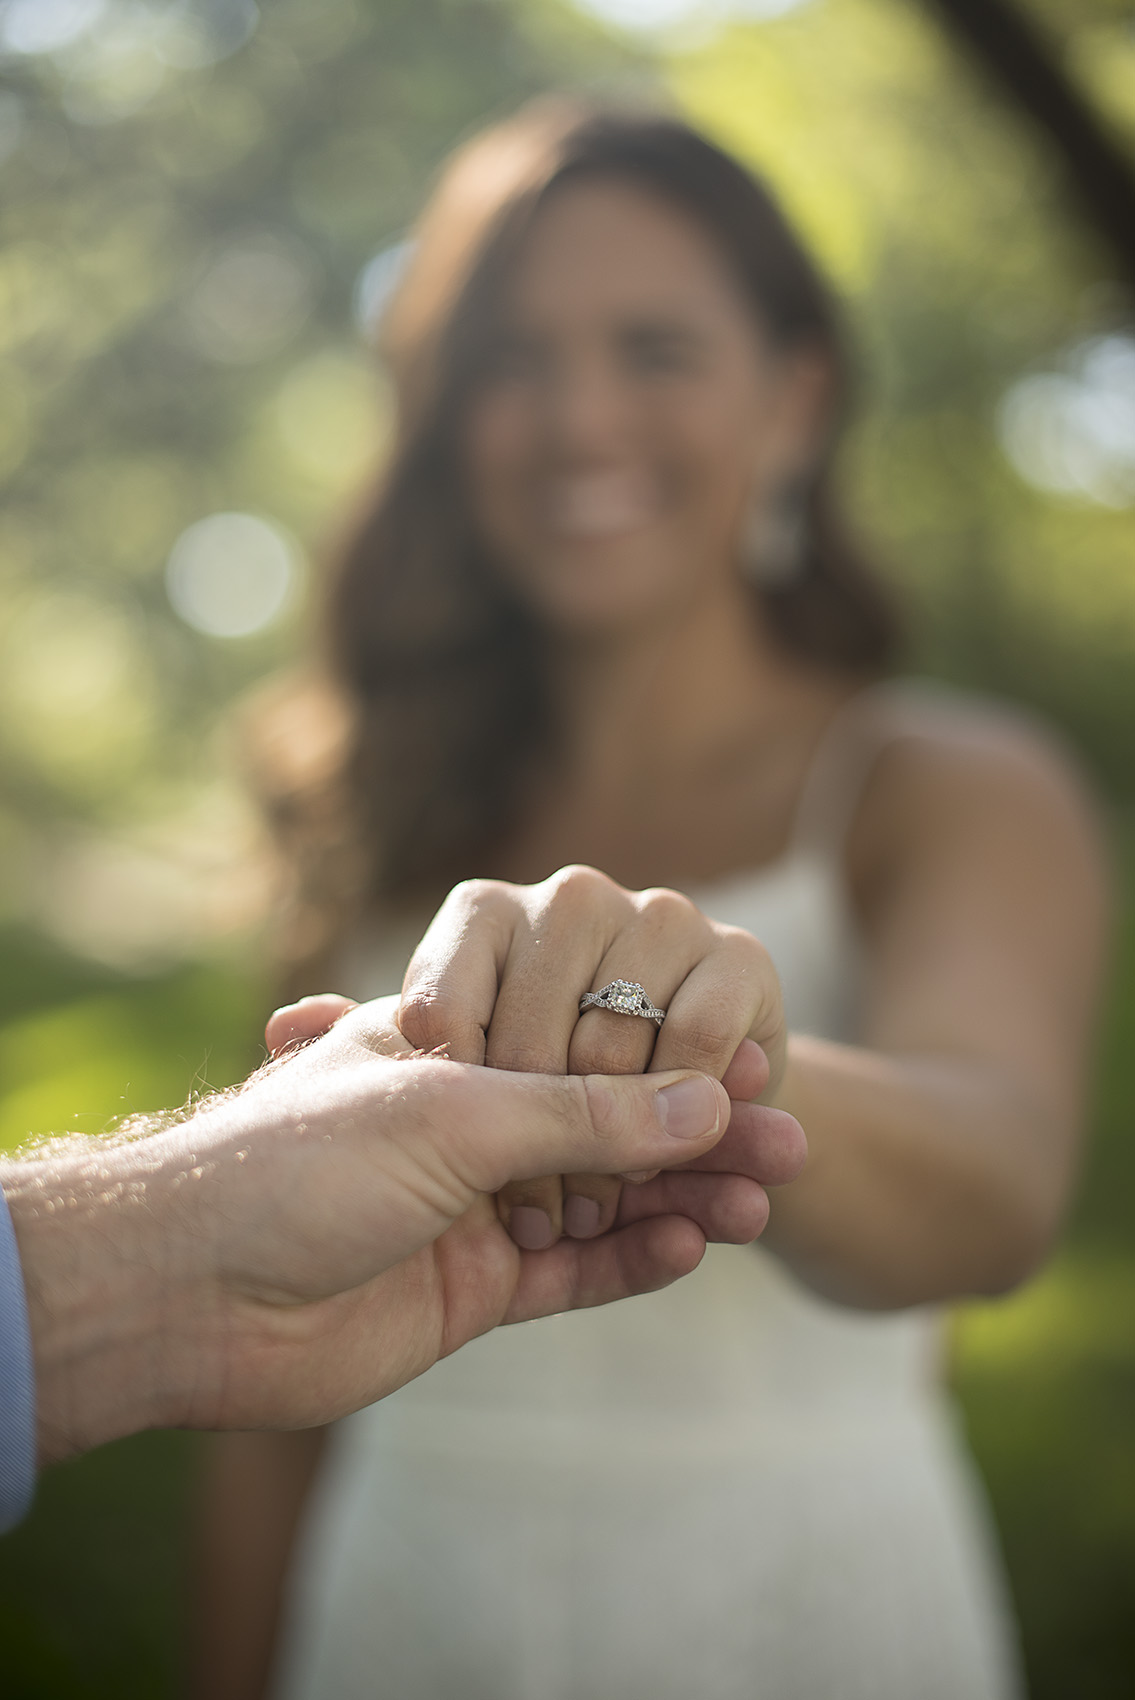 Angleton Magnolia Manor Engagement ring photo